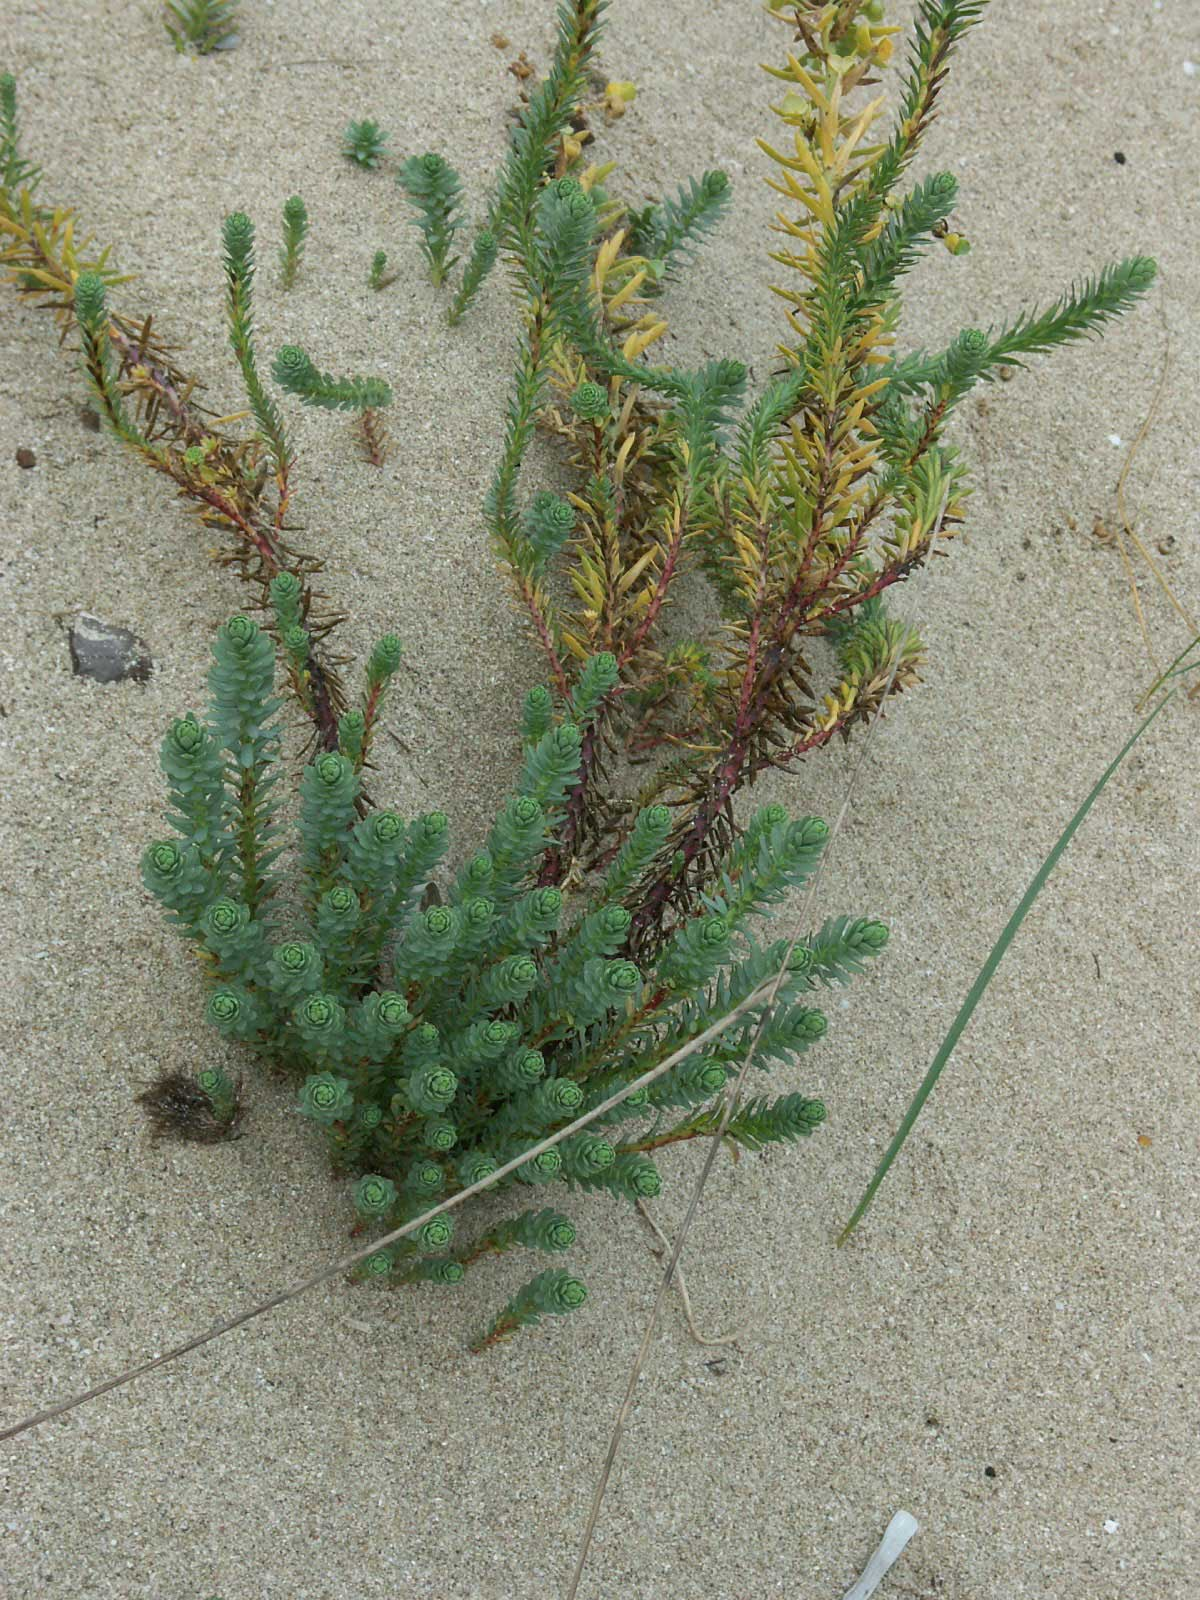 Succulent plants in the sand